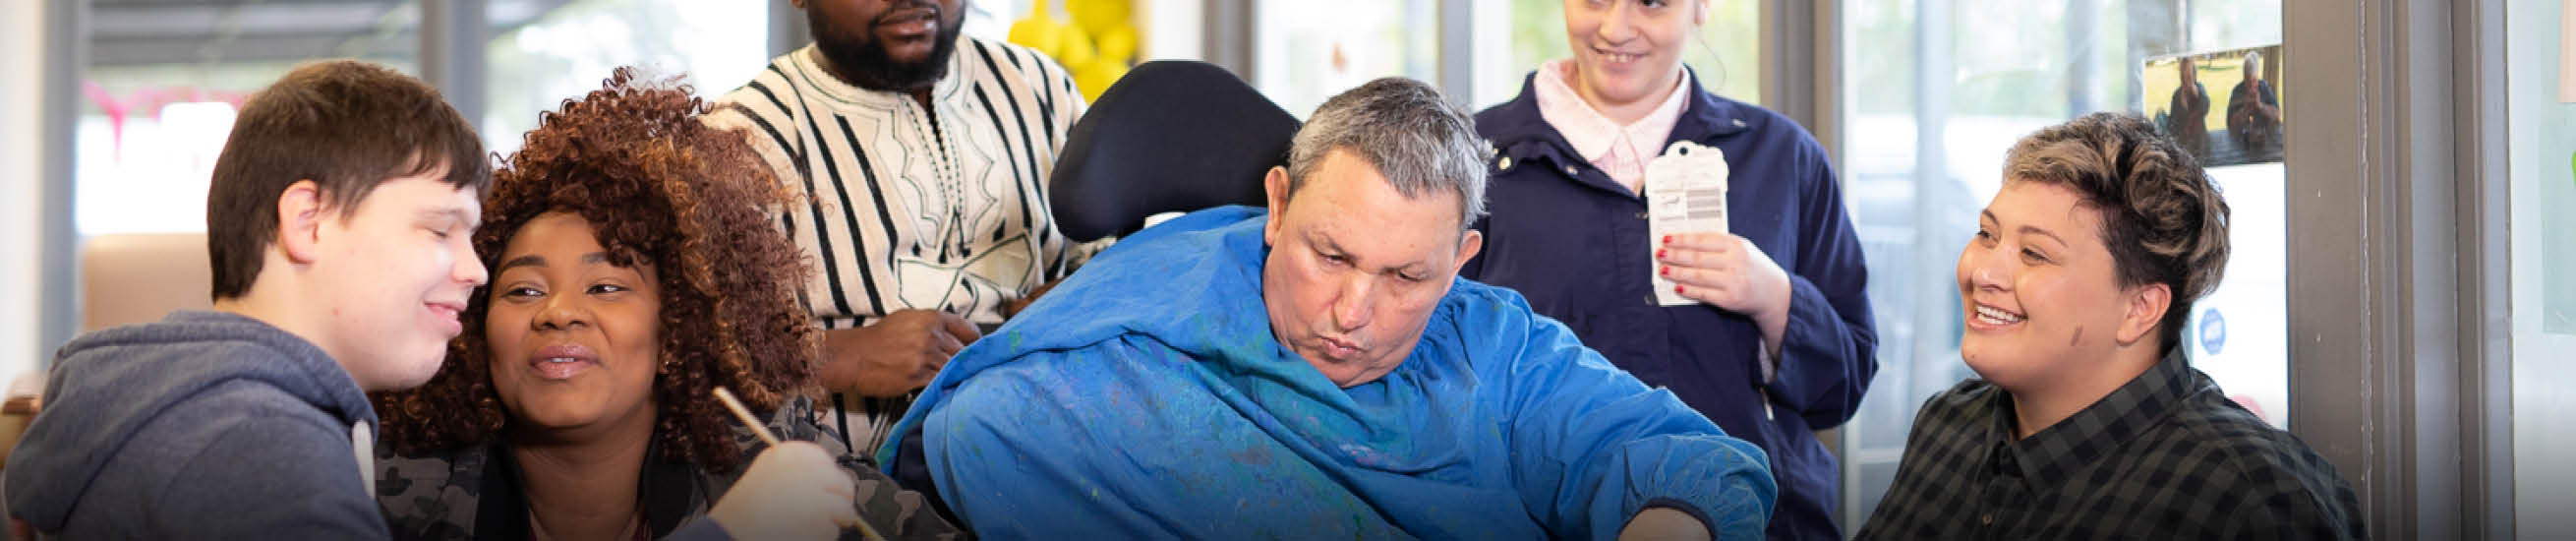 Disability Services Client and Carer